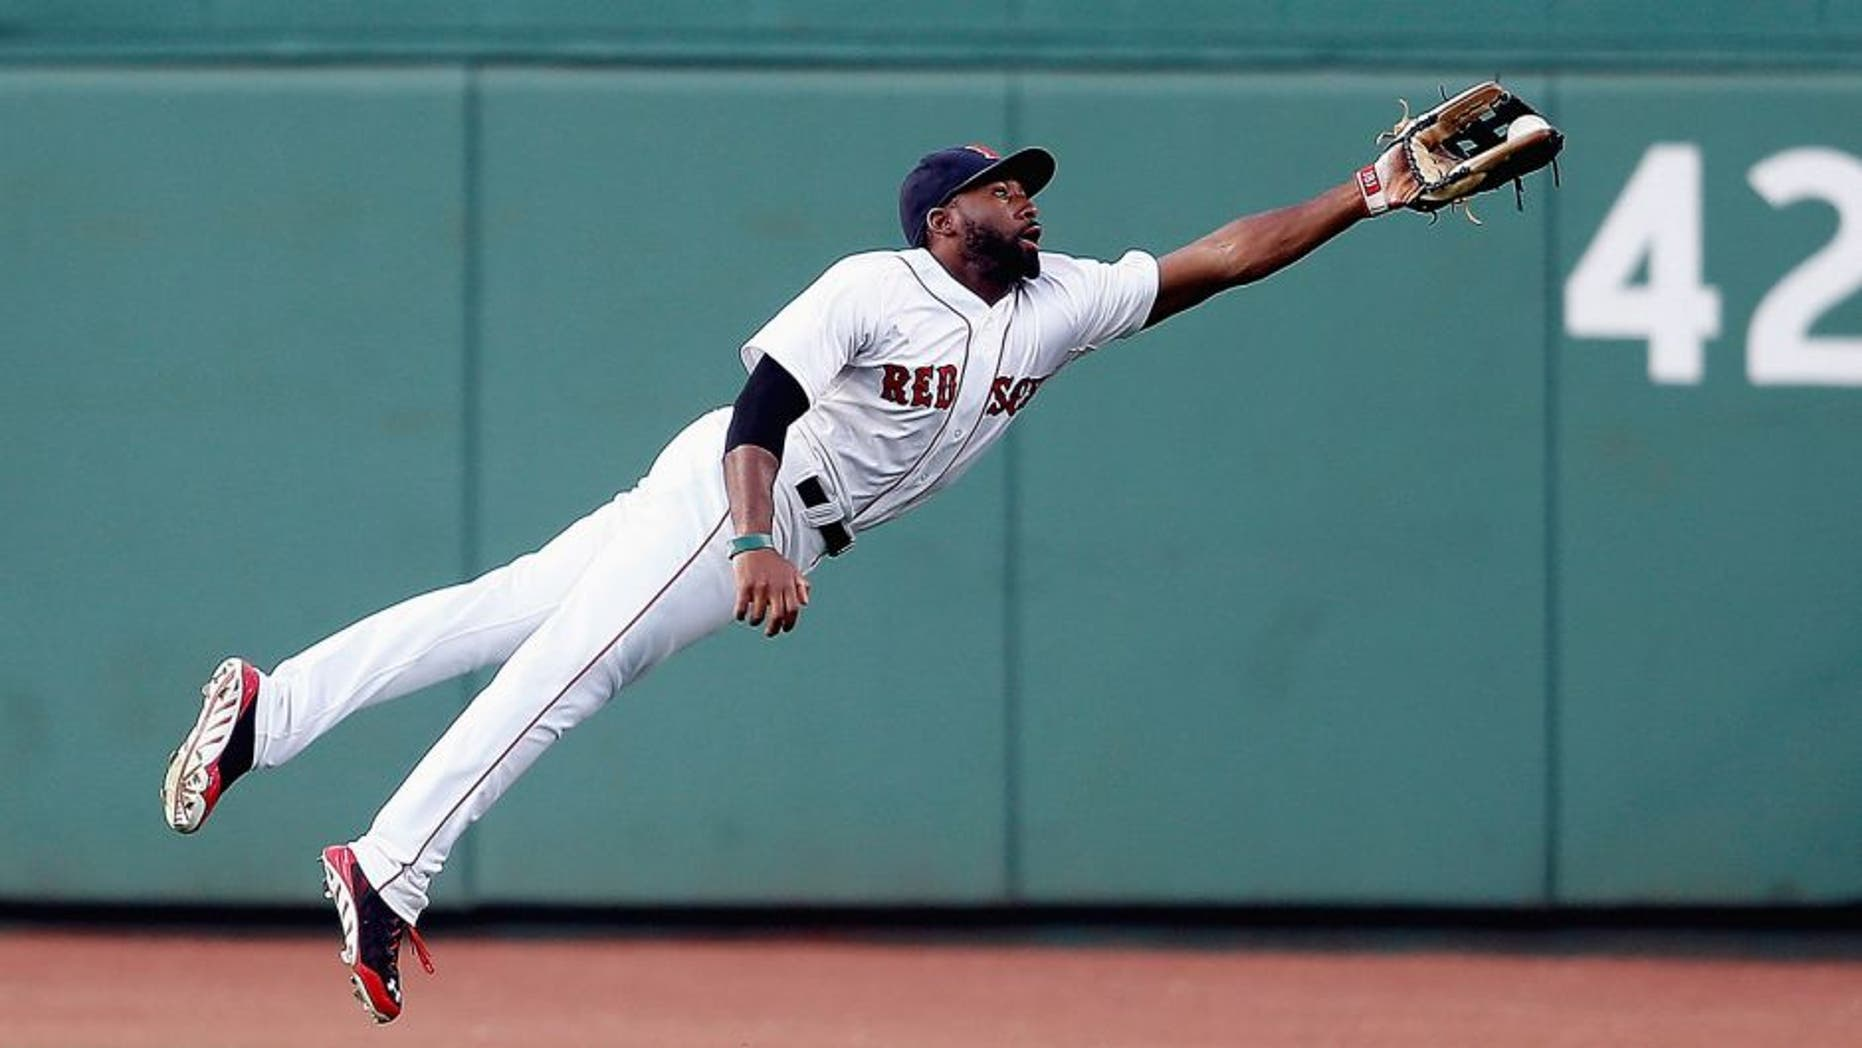 BOSTON, MA - JULY 9: Jackie Bradley Jr. #25 of the Boston Red Sox makes a catch on a ball off the bat of Tyler Flowers #21 of the Chicago White Sox in the second inning at Fenway Park on July 9, 2014 in Boston, Massachusetts. (Photo by Jim Rogash/Getty Images)